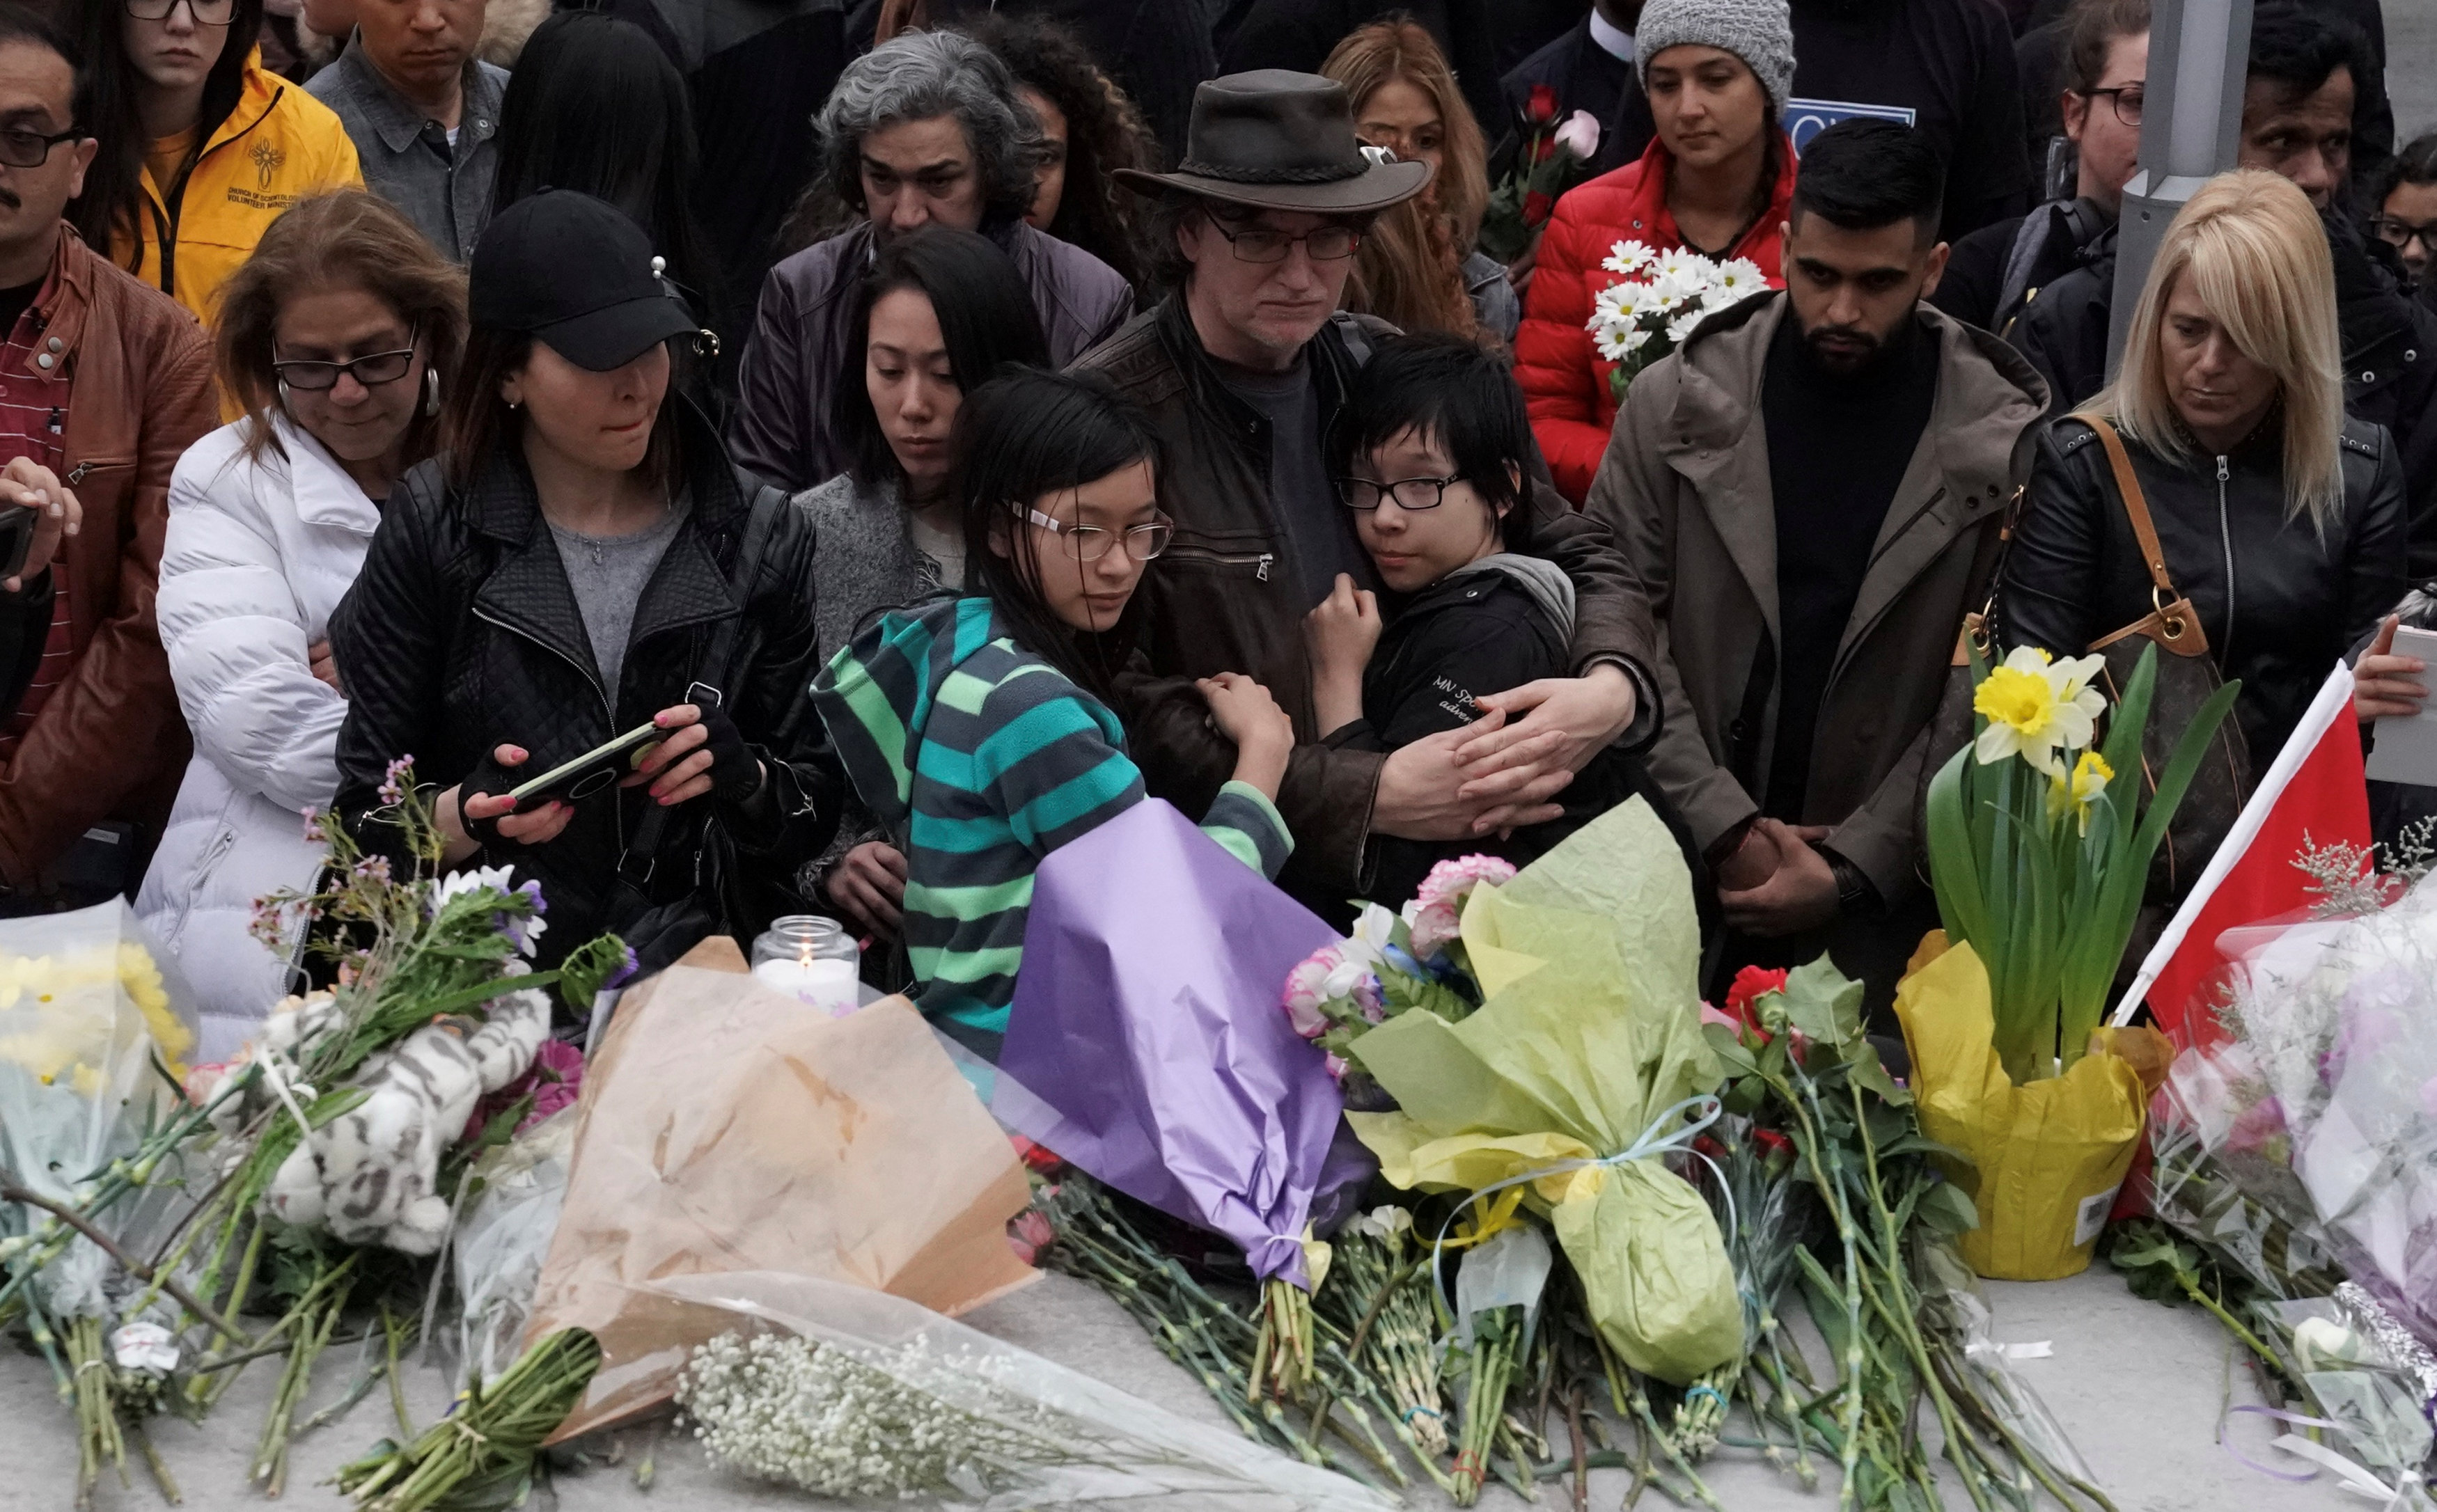 Mourners attend a makeshift memorial a day after a van struck multiple people along a major intersection in north Toronto, Ontario, Canada, April 24, 2018. REUTERS/Carlo Allegr